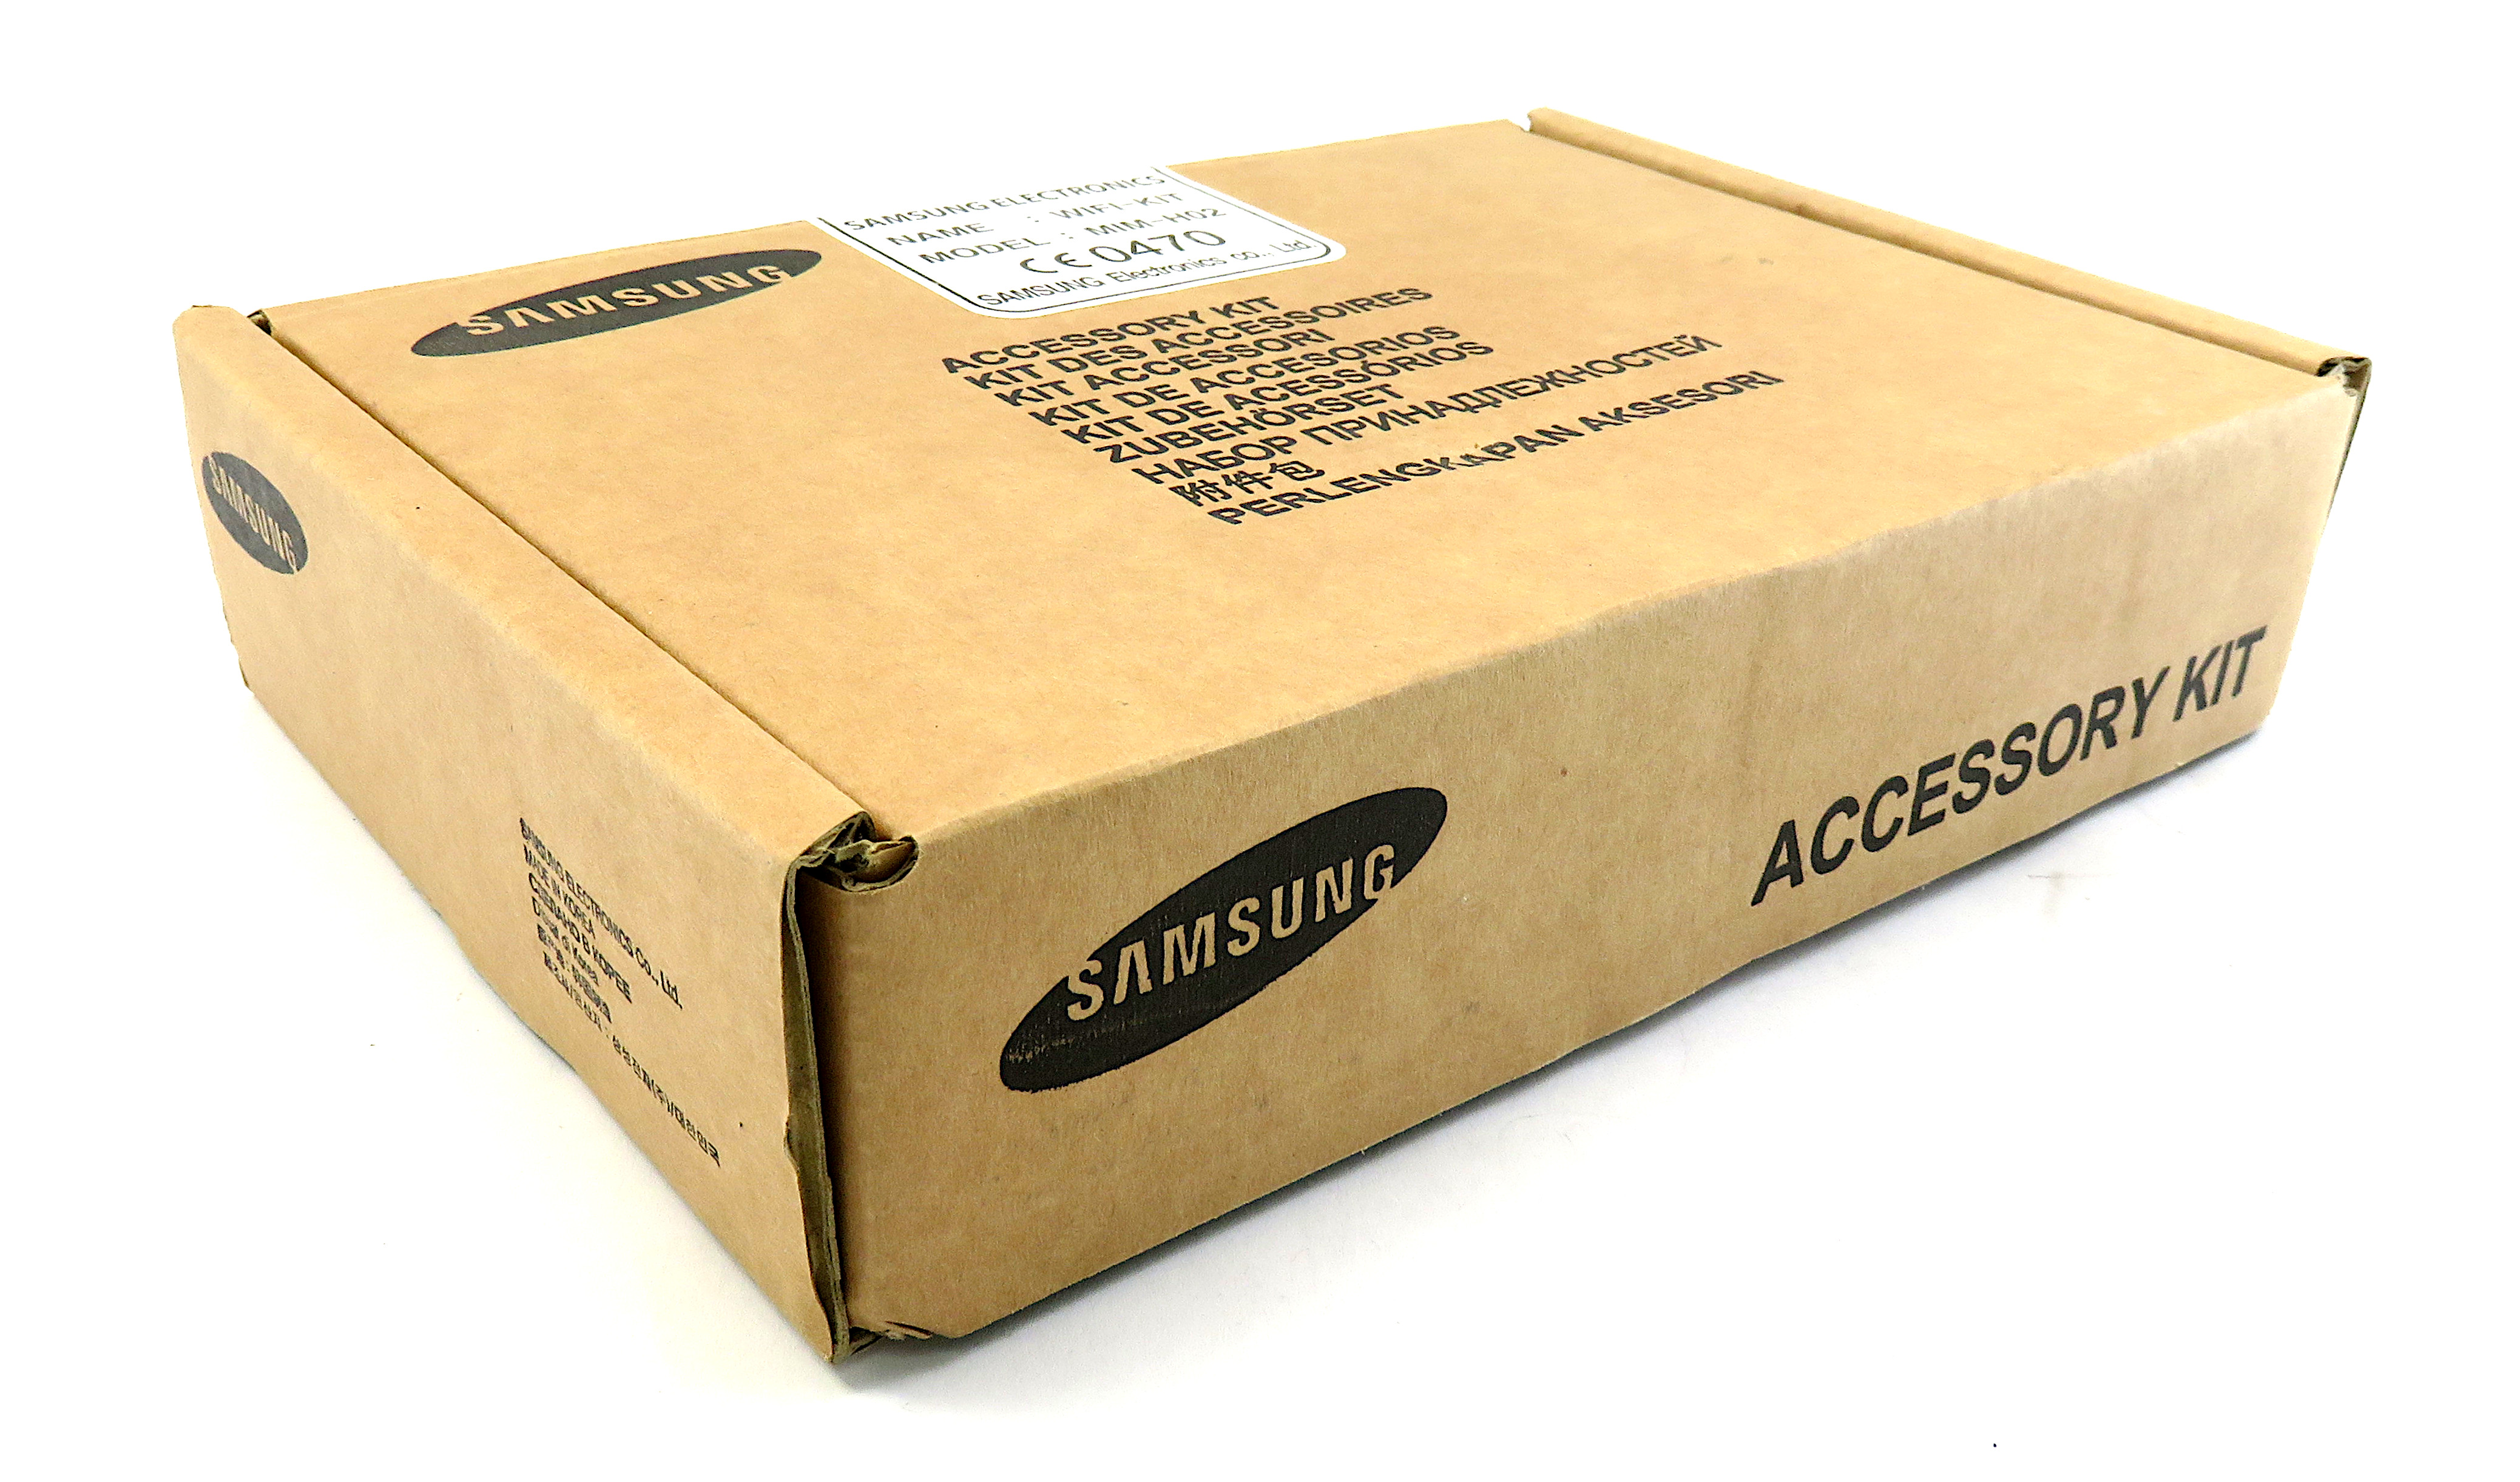 Samsung WIFI-Kit Accessory Kit for Samsung Air Conditioner Unit - MIM-H02 - New